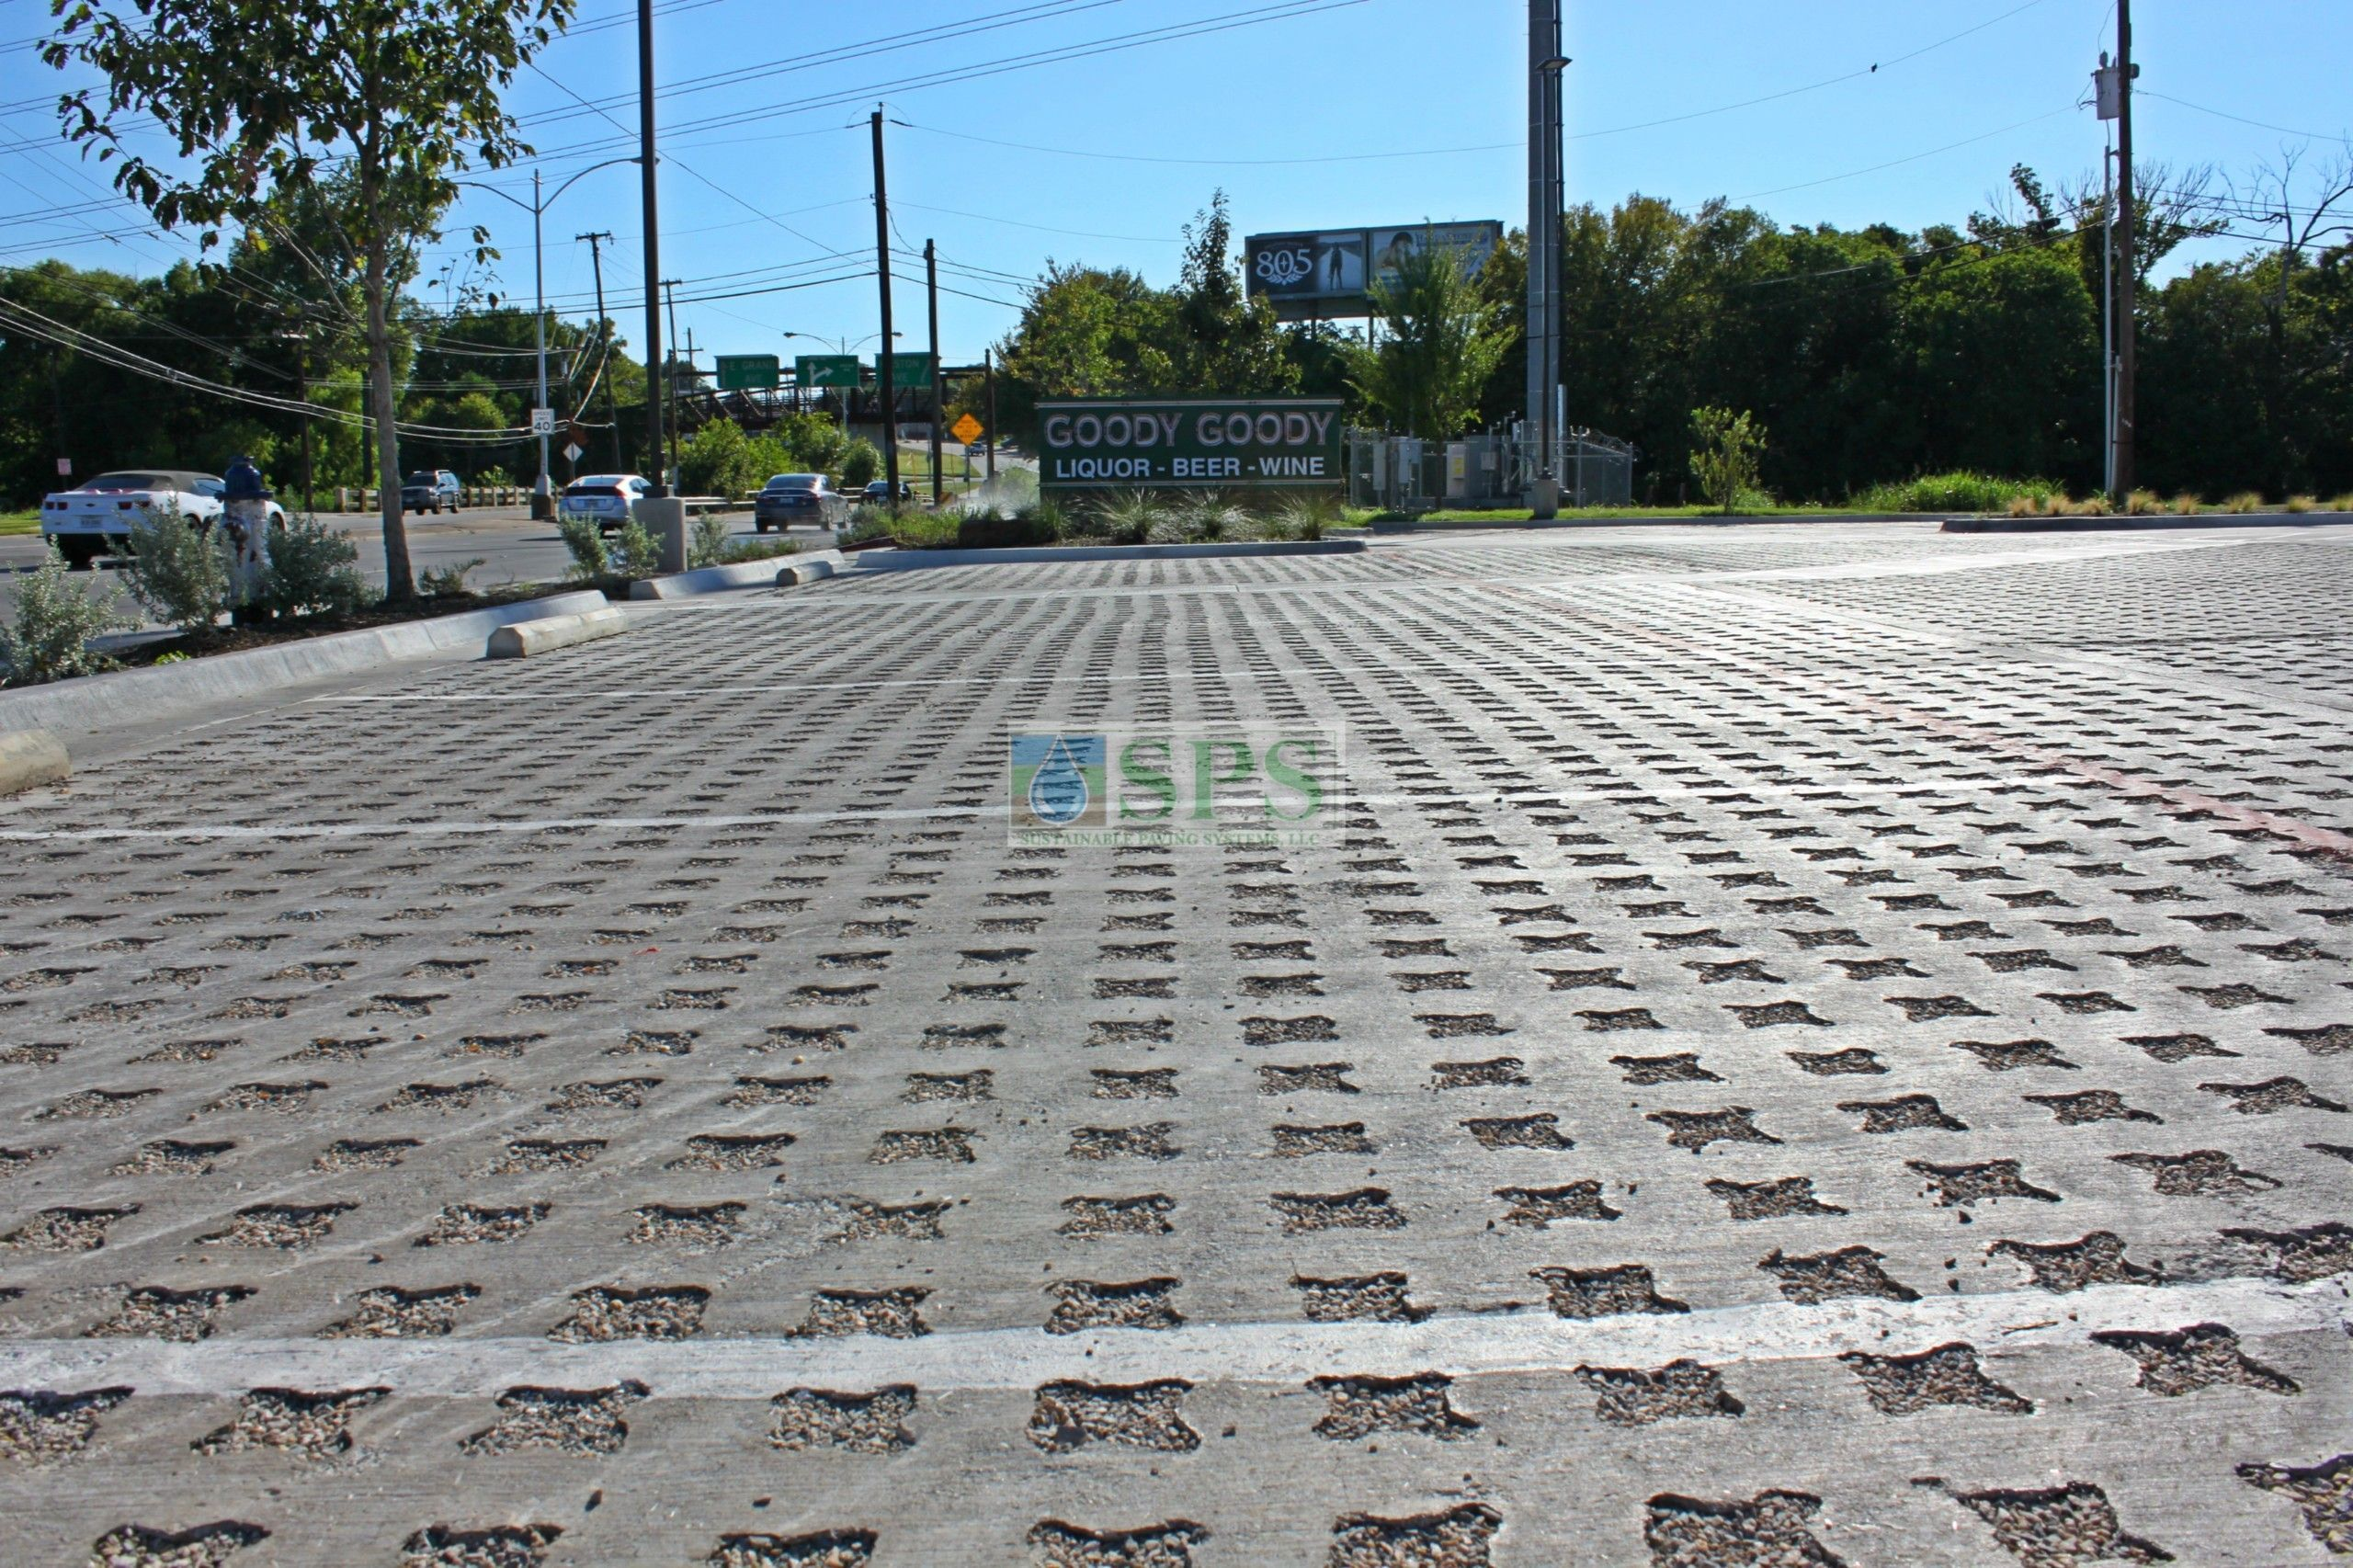 Close up long view of the parking lot of Goody Goody Liquor in Dallas, TX, featuring Grasscrete Stone Filled Systems installed by Texas Bomanite.